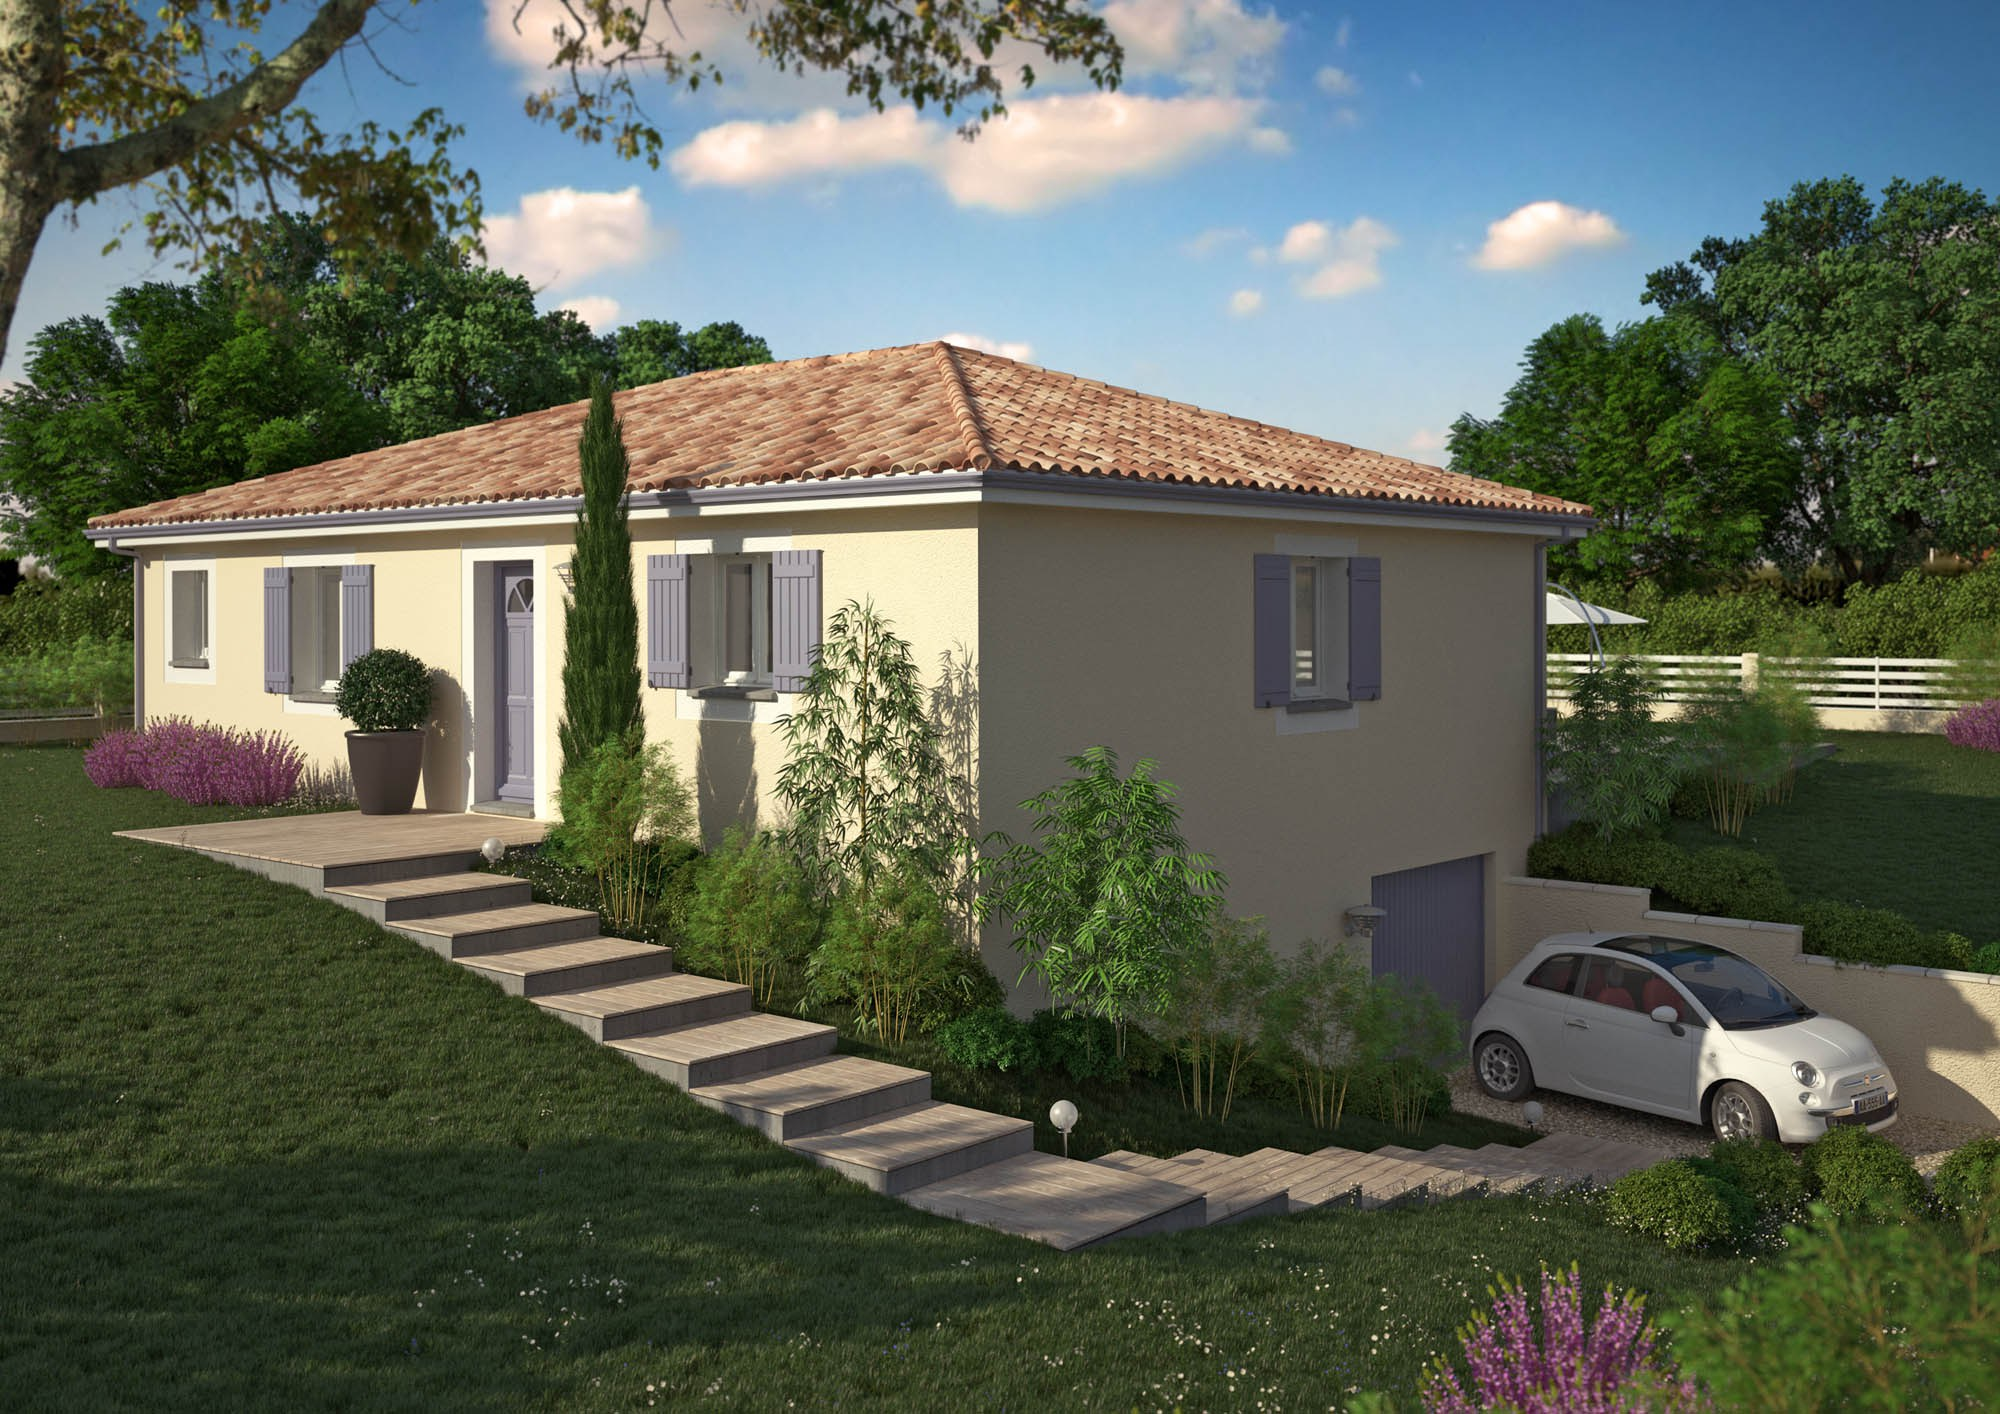 Milie les maisons chantal b for Maisons chantal b